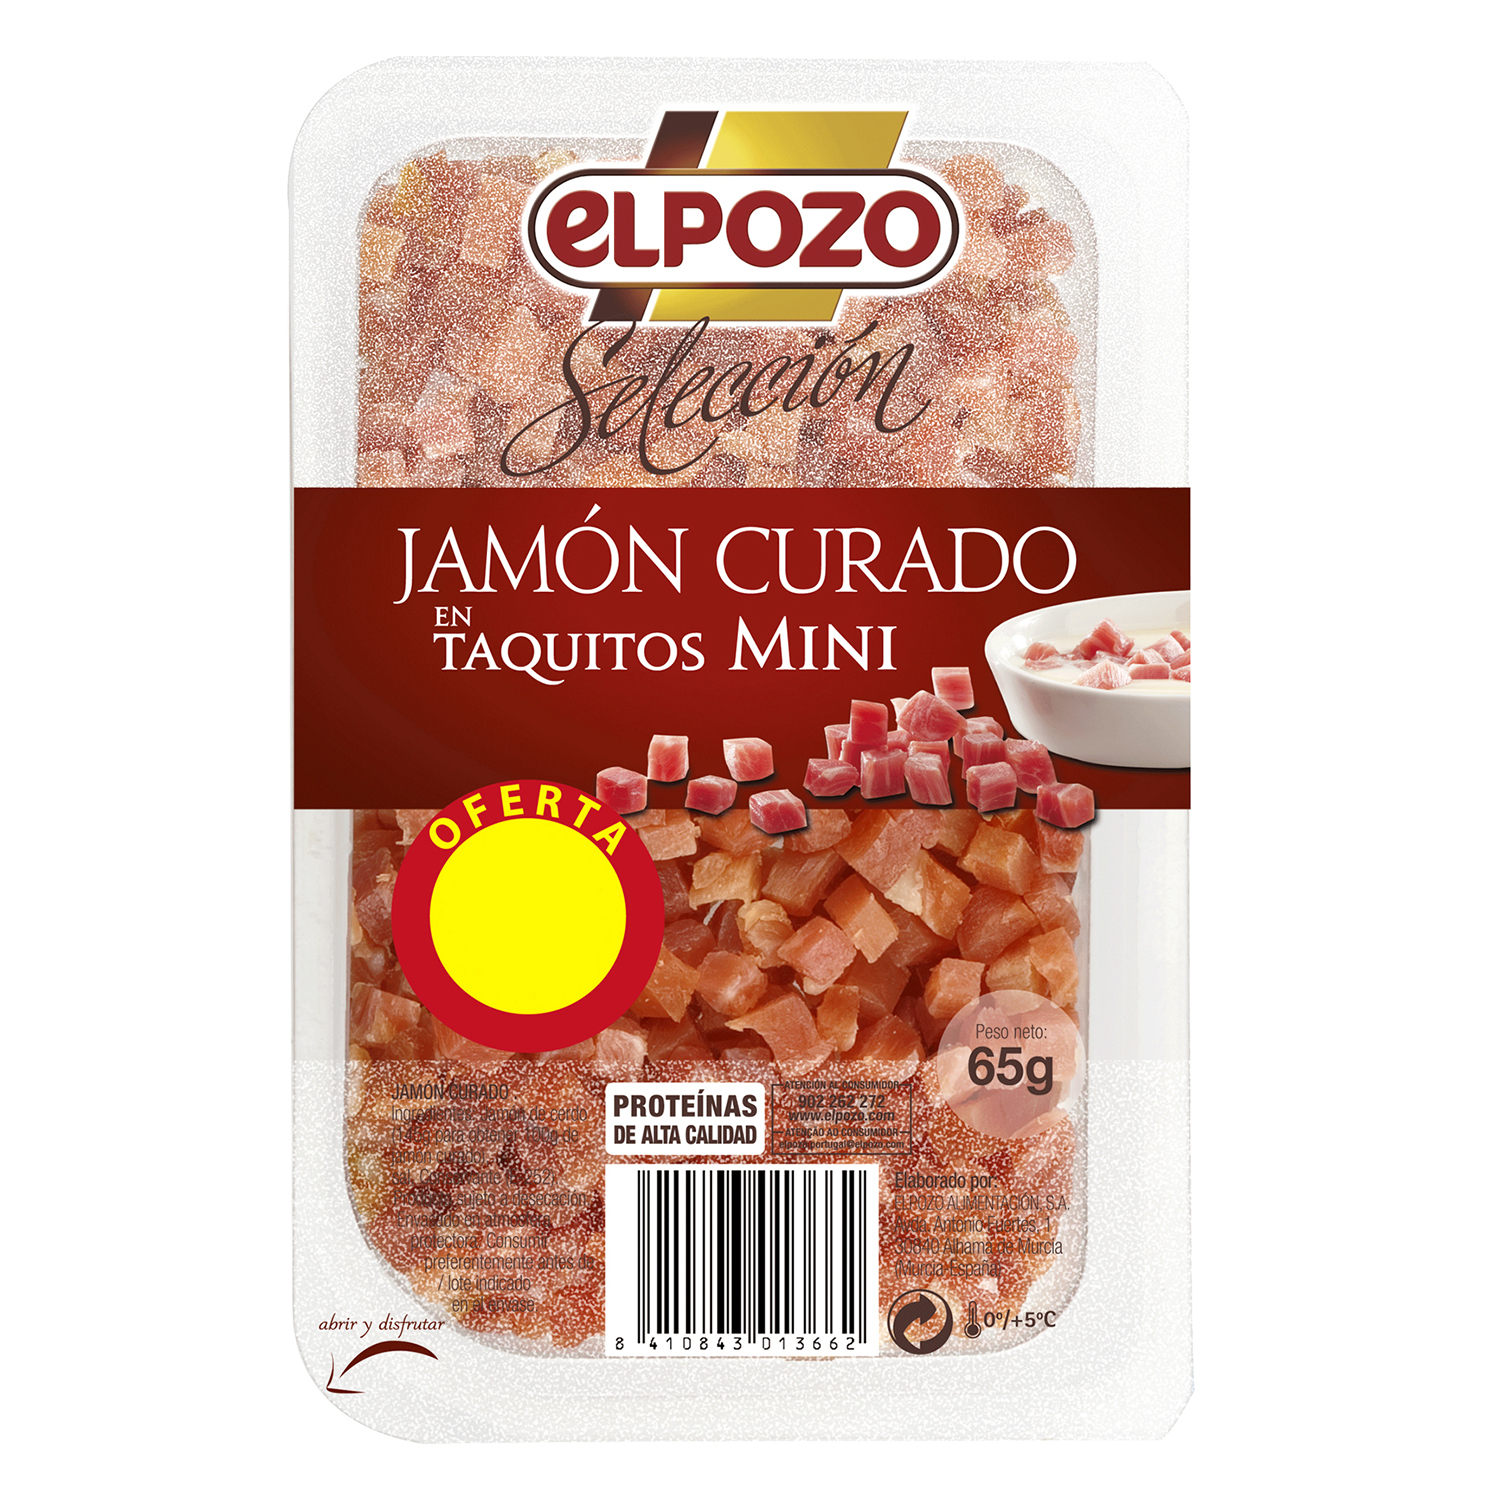 Jamón taquitos mini